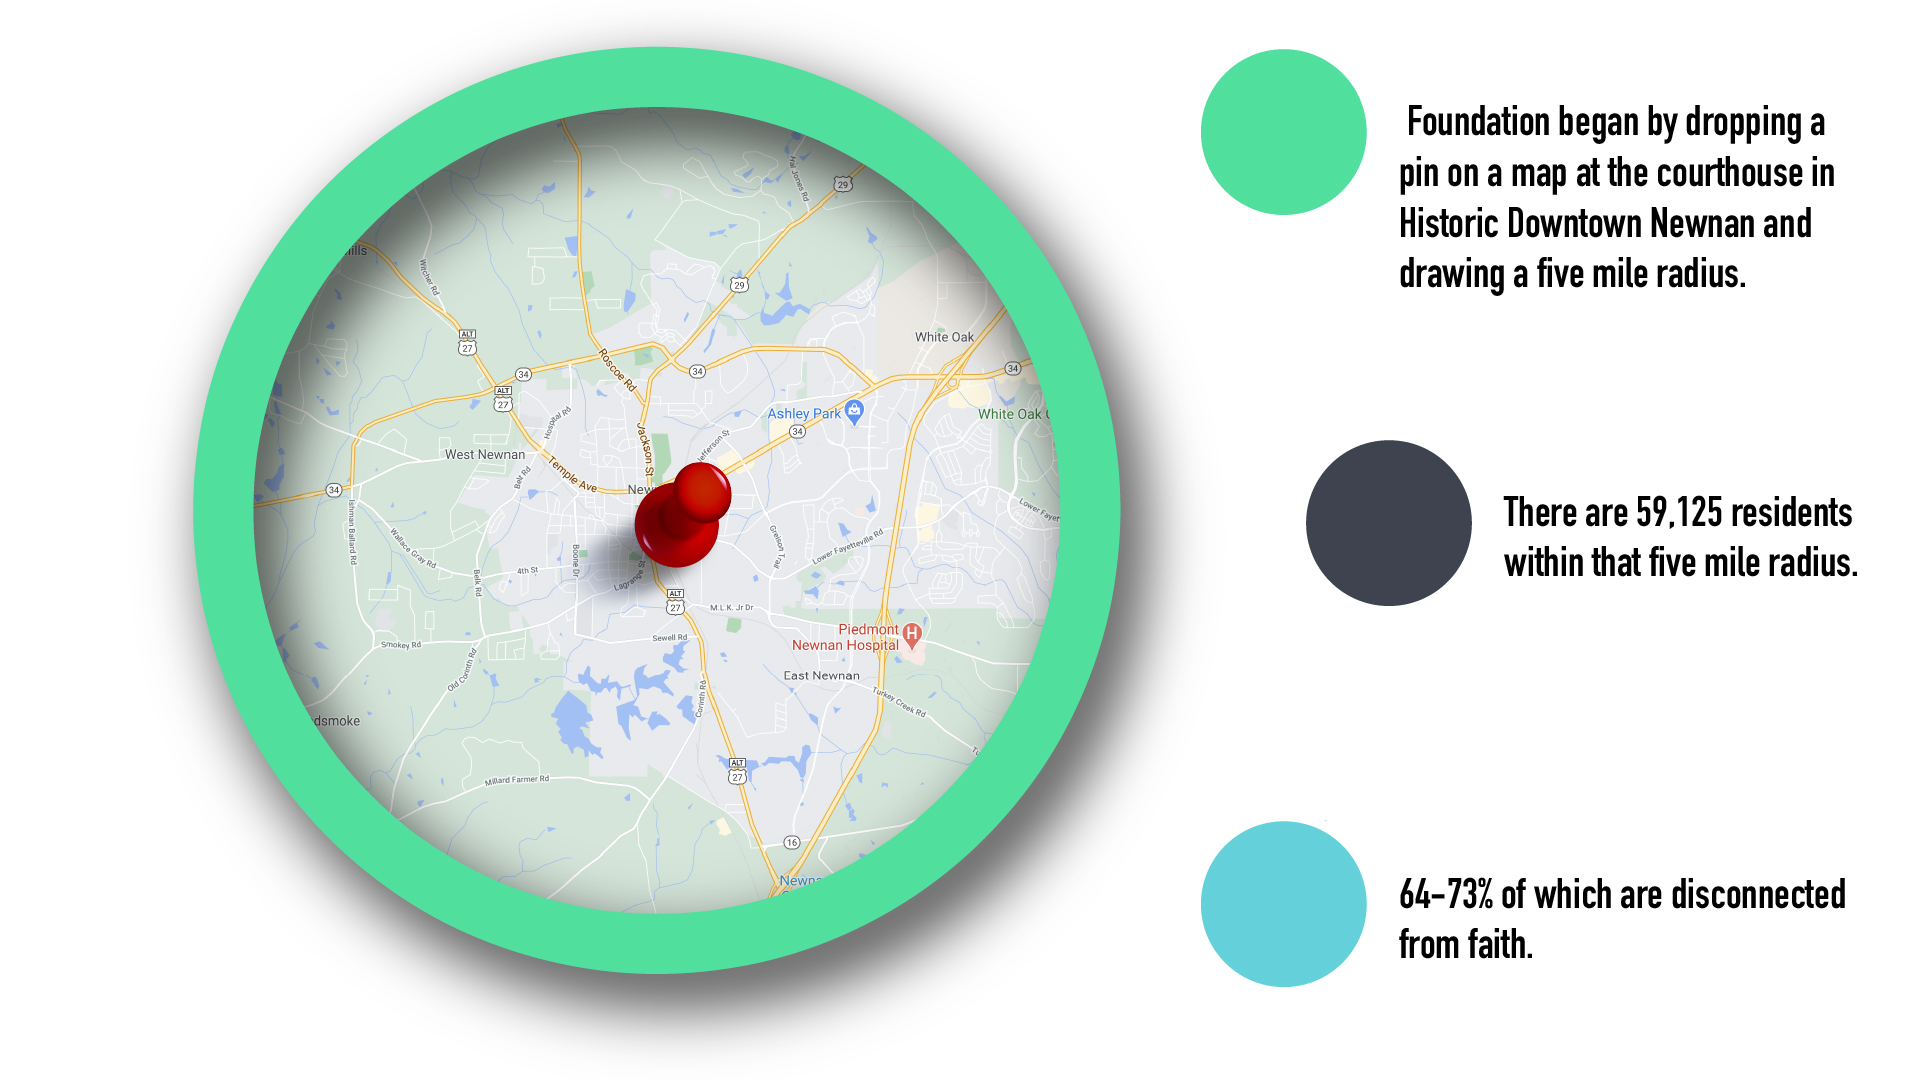 There are 59,125 residents within a 5 mile radius of Downtown Newnan.